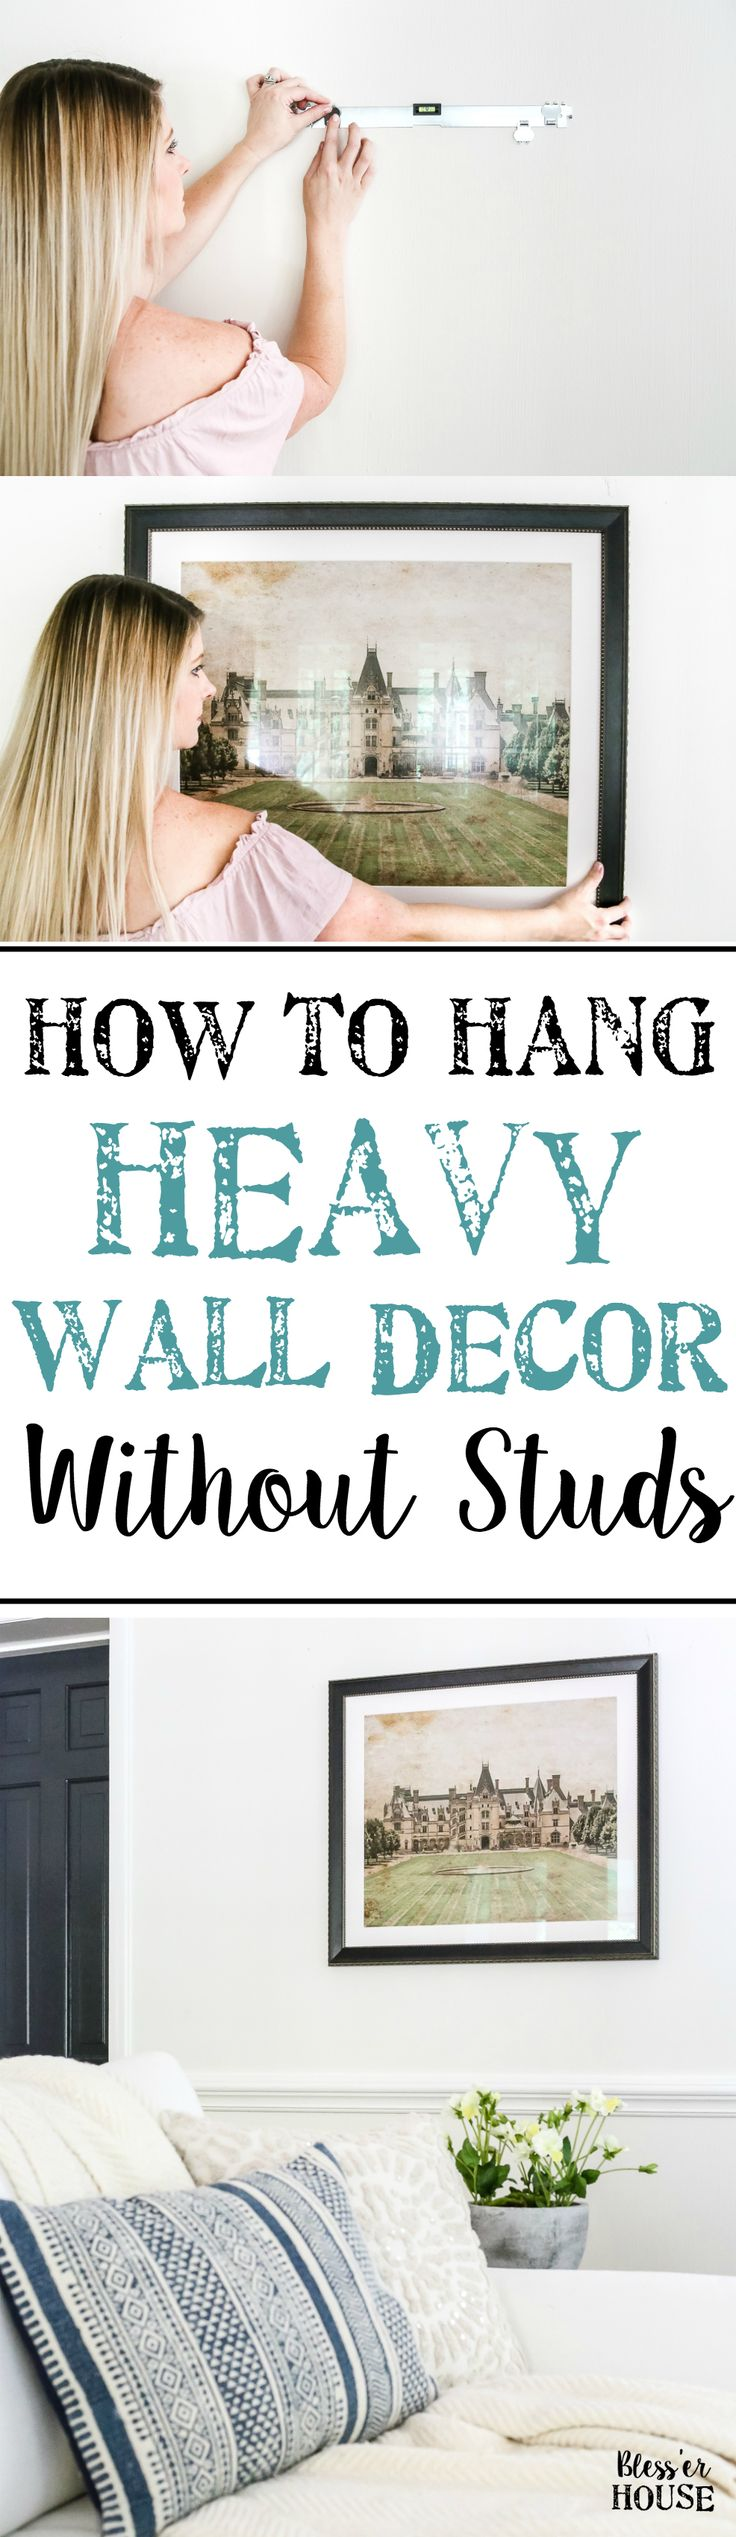 Best 25 How To Hang Drywall Ideas On Pinterest How To